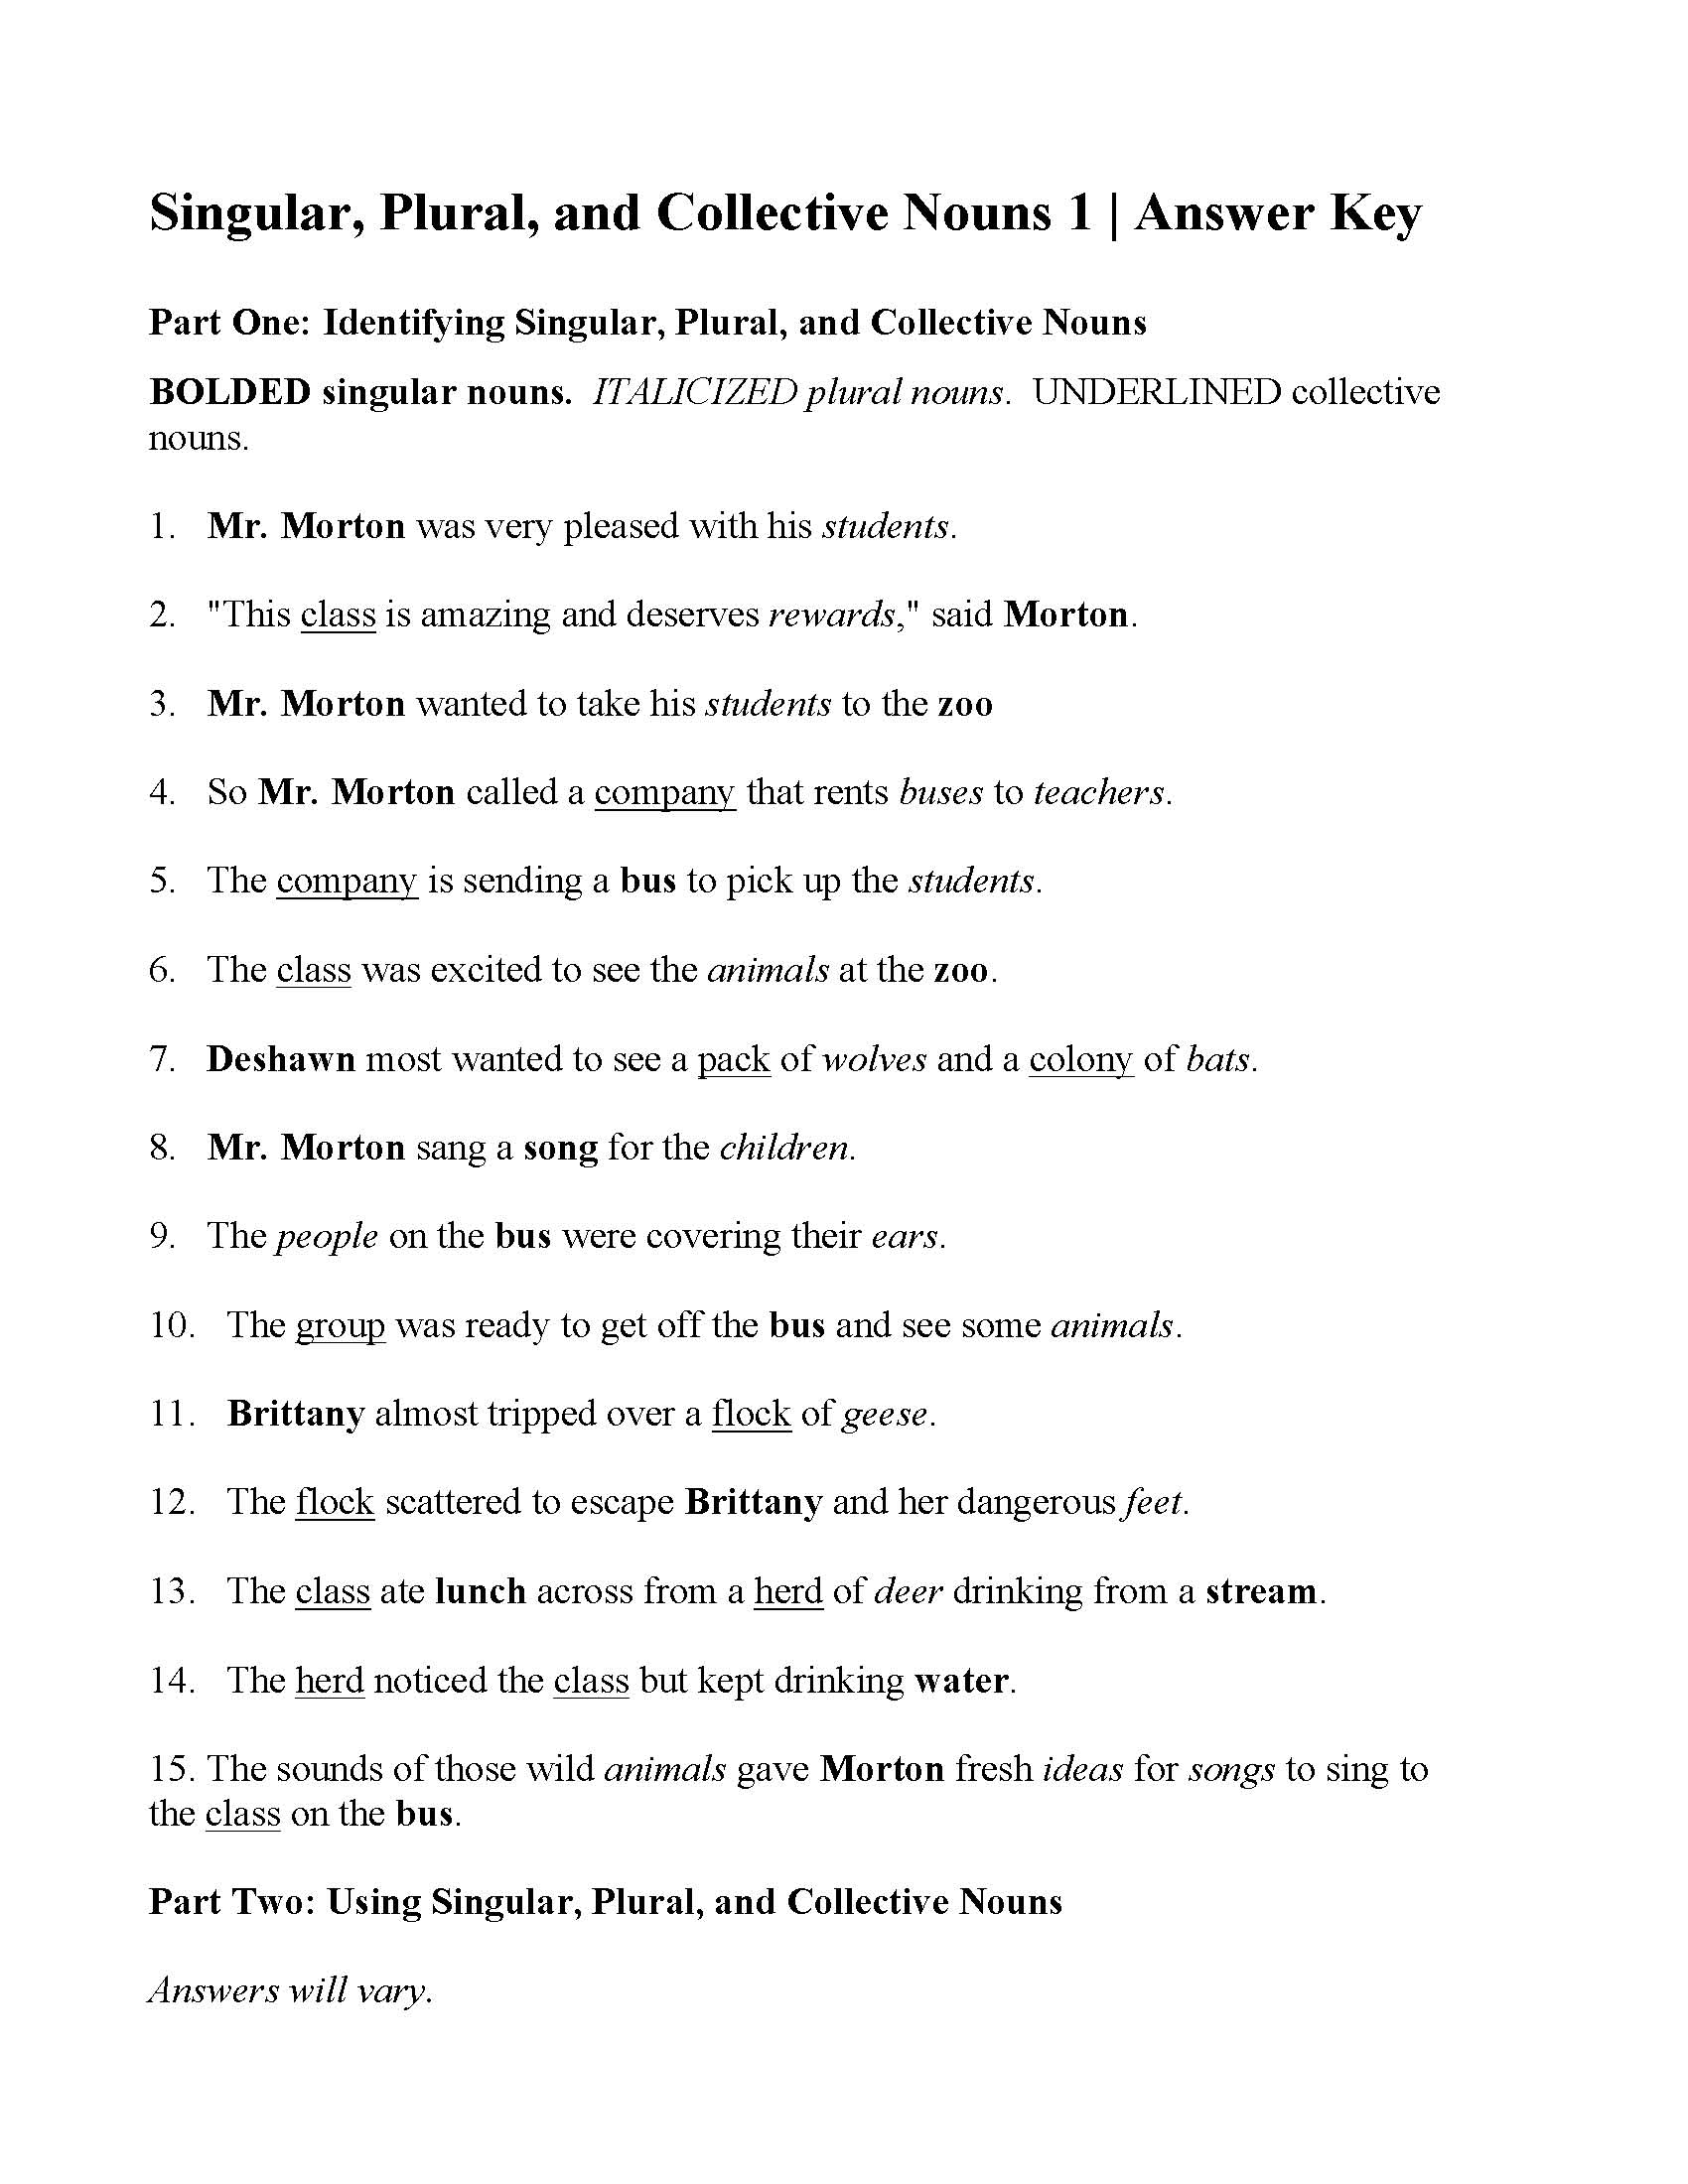 Noun Worksheets With Answers : worksheets, answers, Singular,, Plural,, Collective, Nouns, Worksheet, Answers